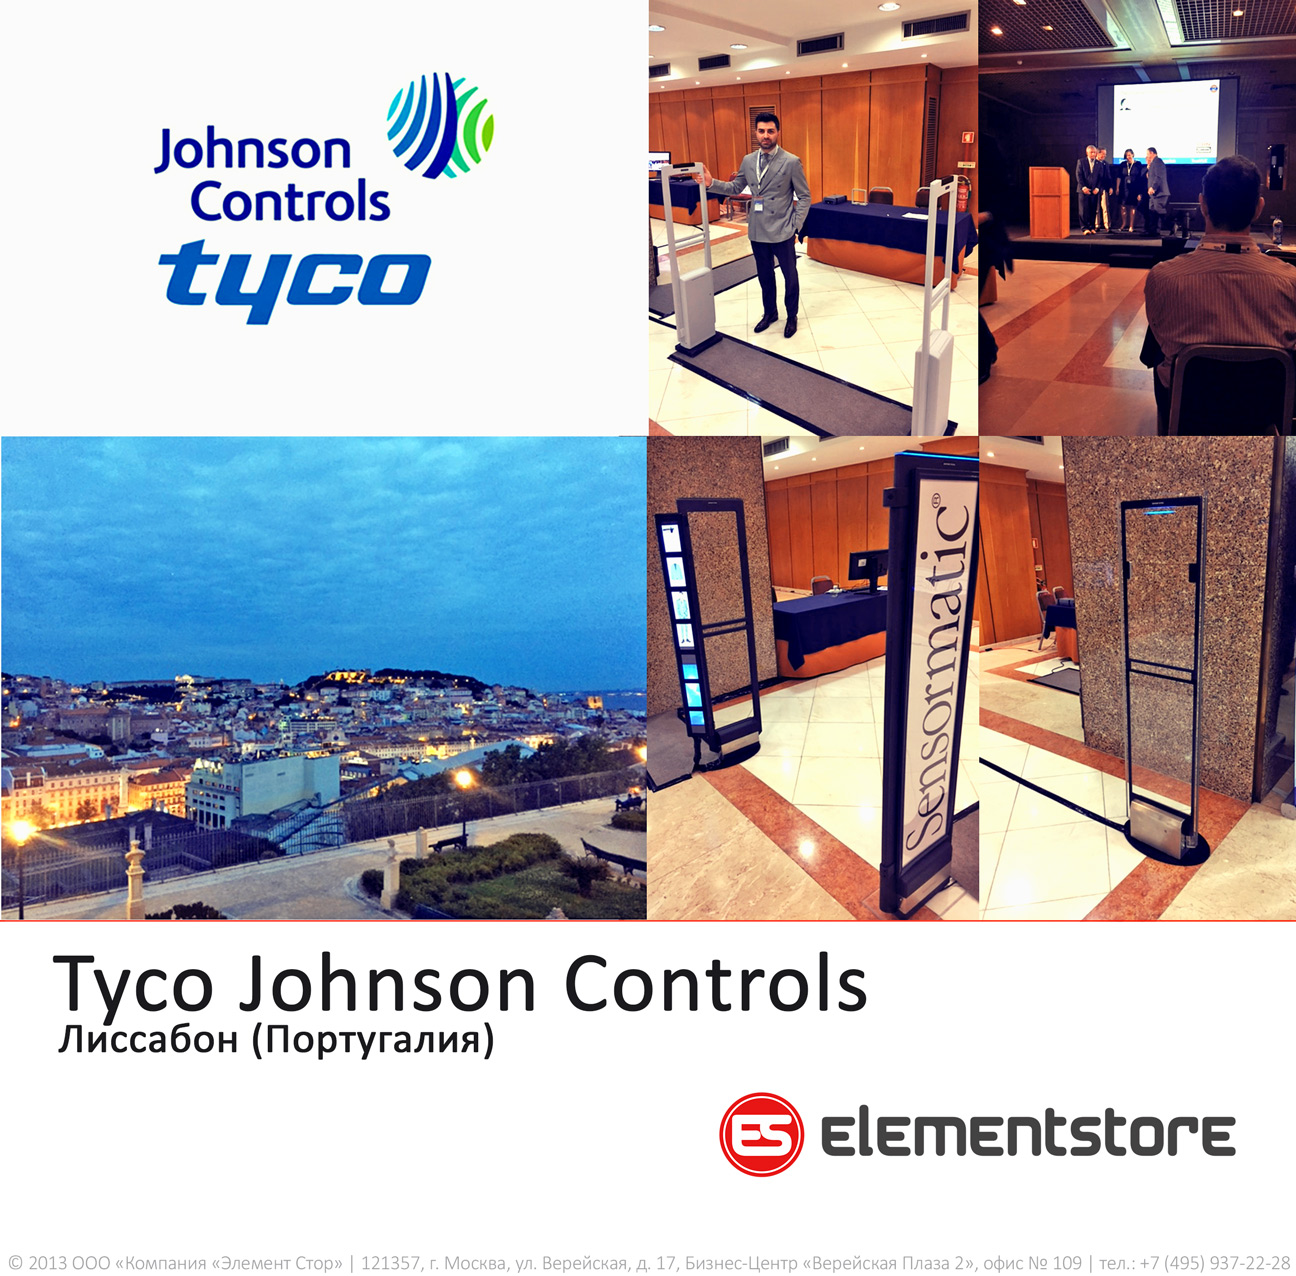 Tyco Johnson Controls